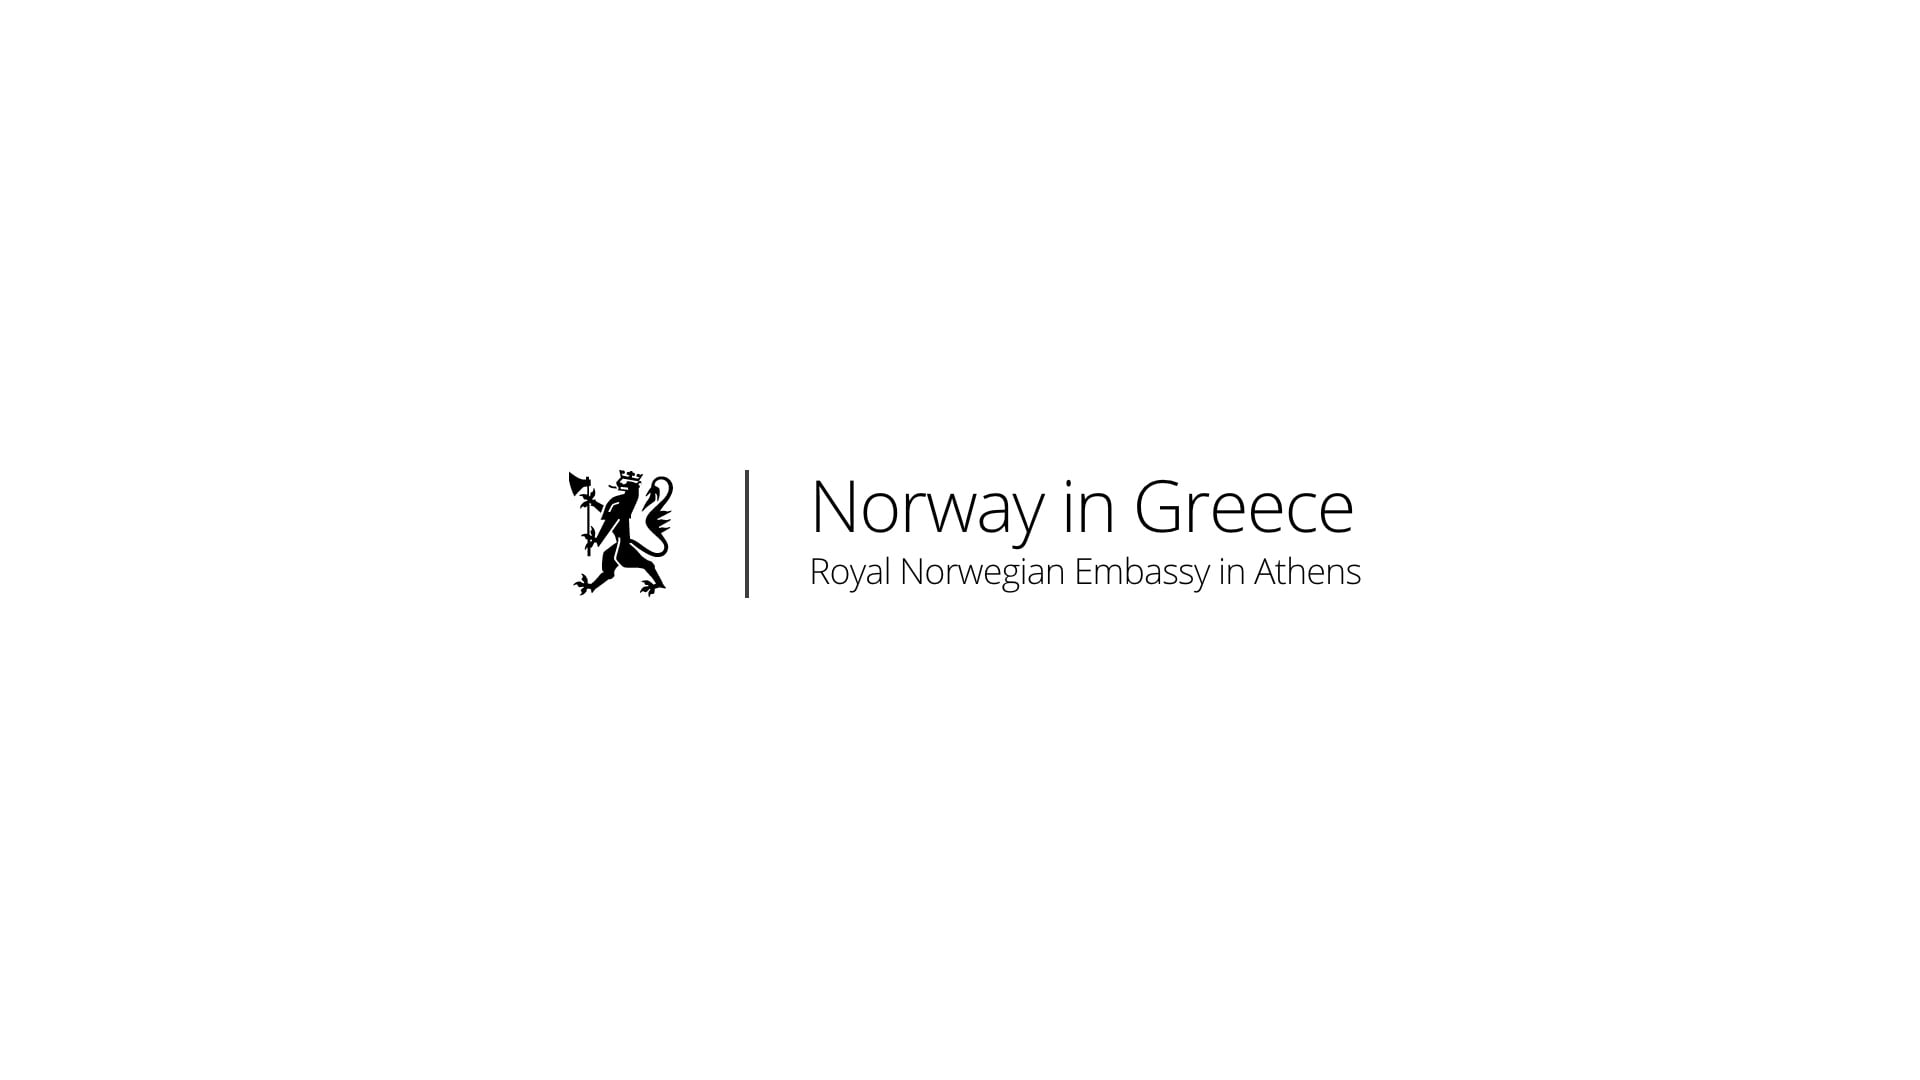 17th of May web video - The Norwegian Embassy in Athens